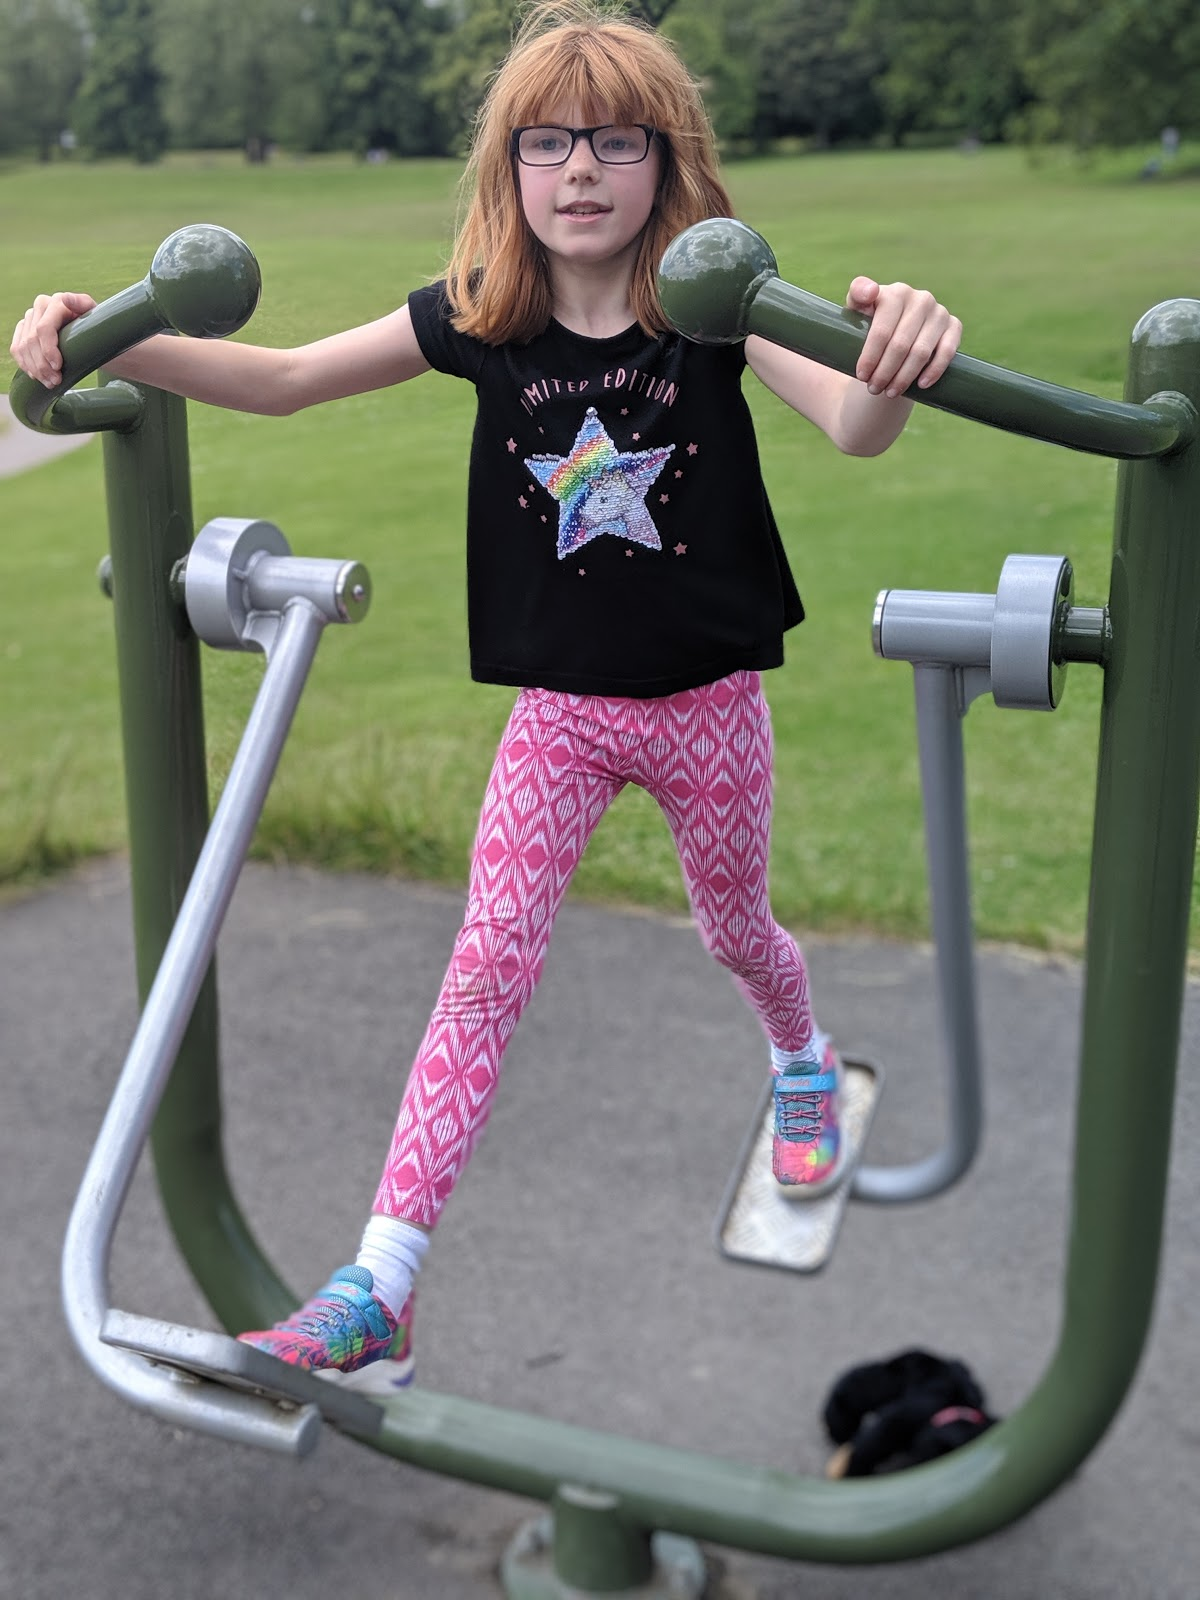 A Short Break in Leeds with Holidays by National Express  - Roundhay Park outdoor gym